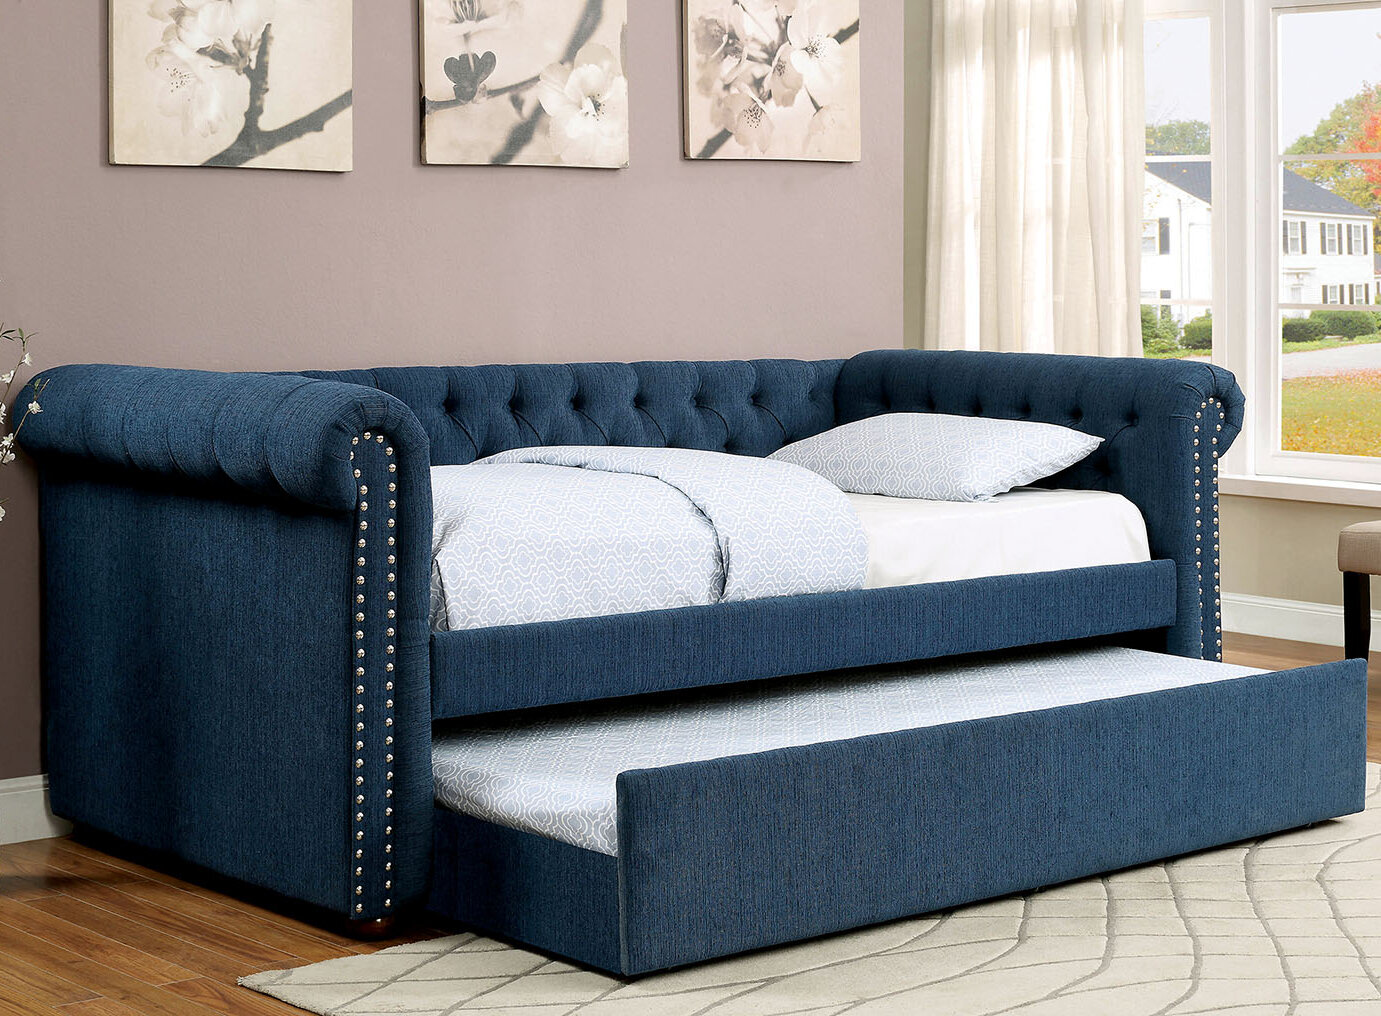 A Amp J Homes Studio Leona Daybed With Trundle Amp Reviews Wayfair